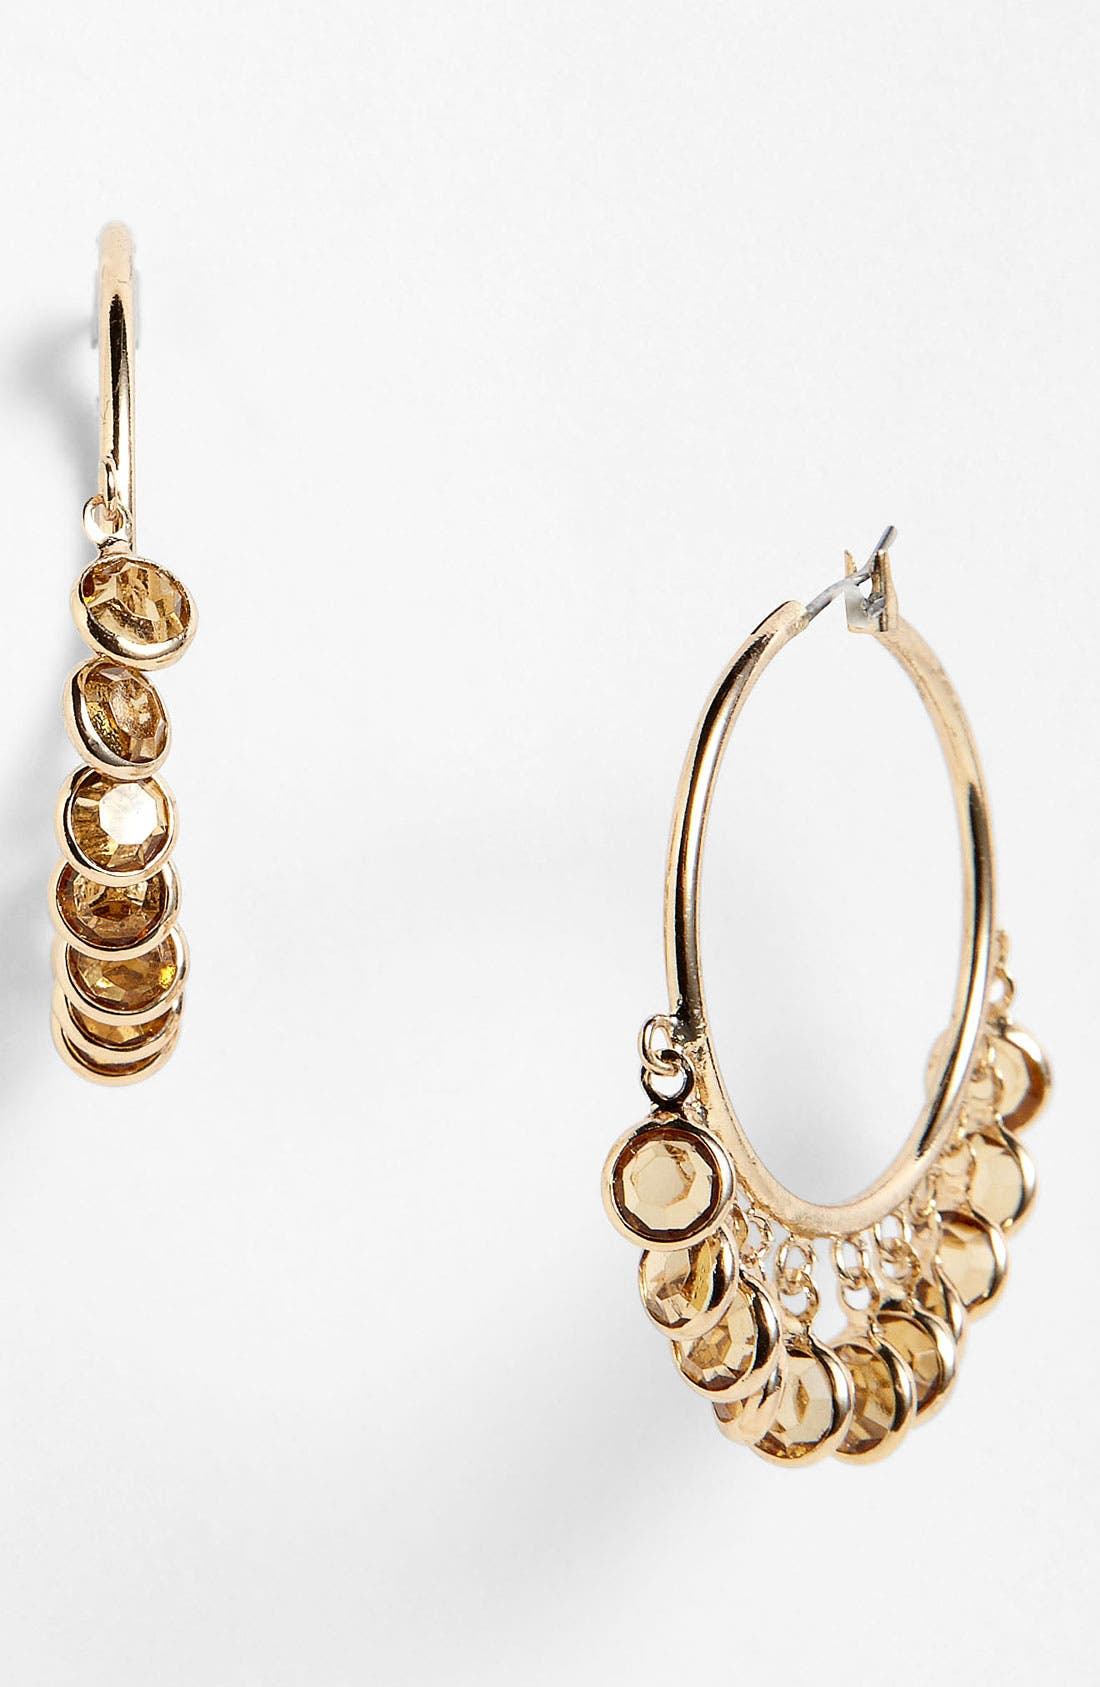 Alternate Image 1 Selected - Anne Klein 'Beacon' Hoop Earrings